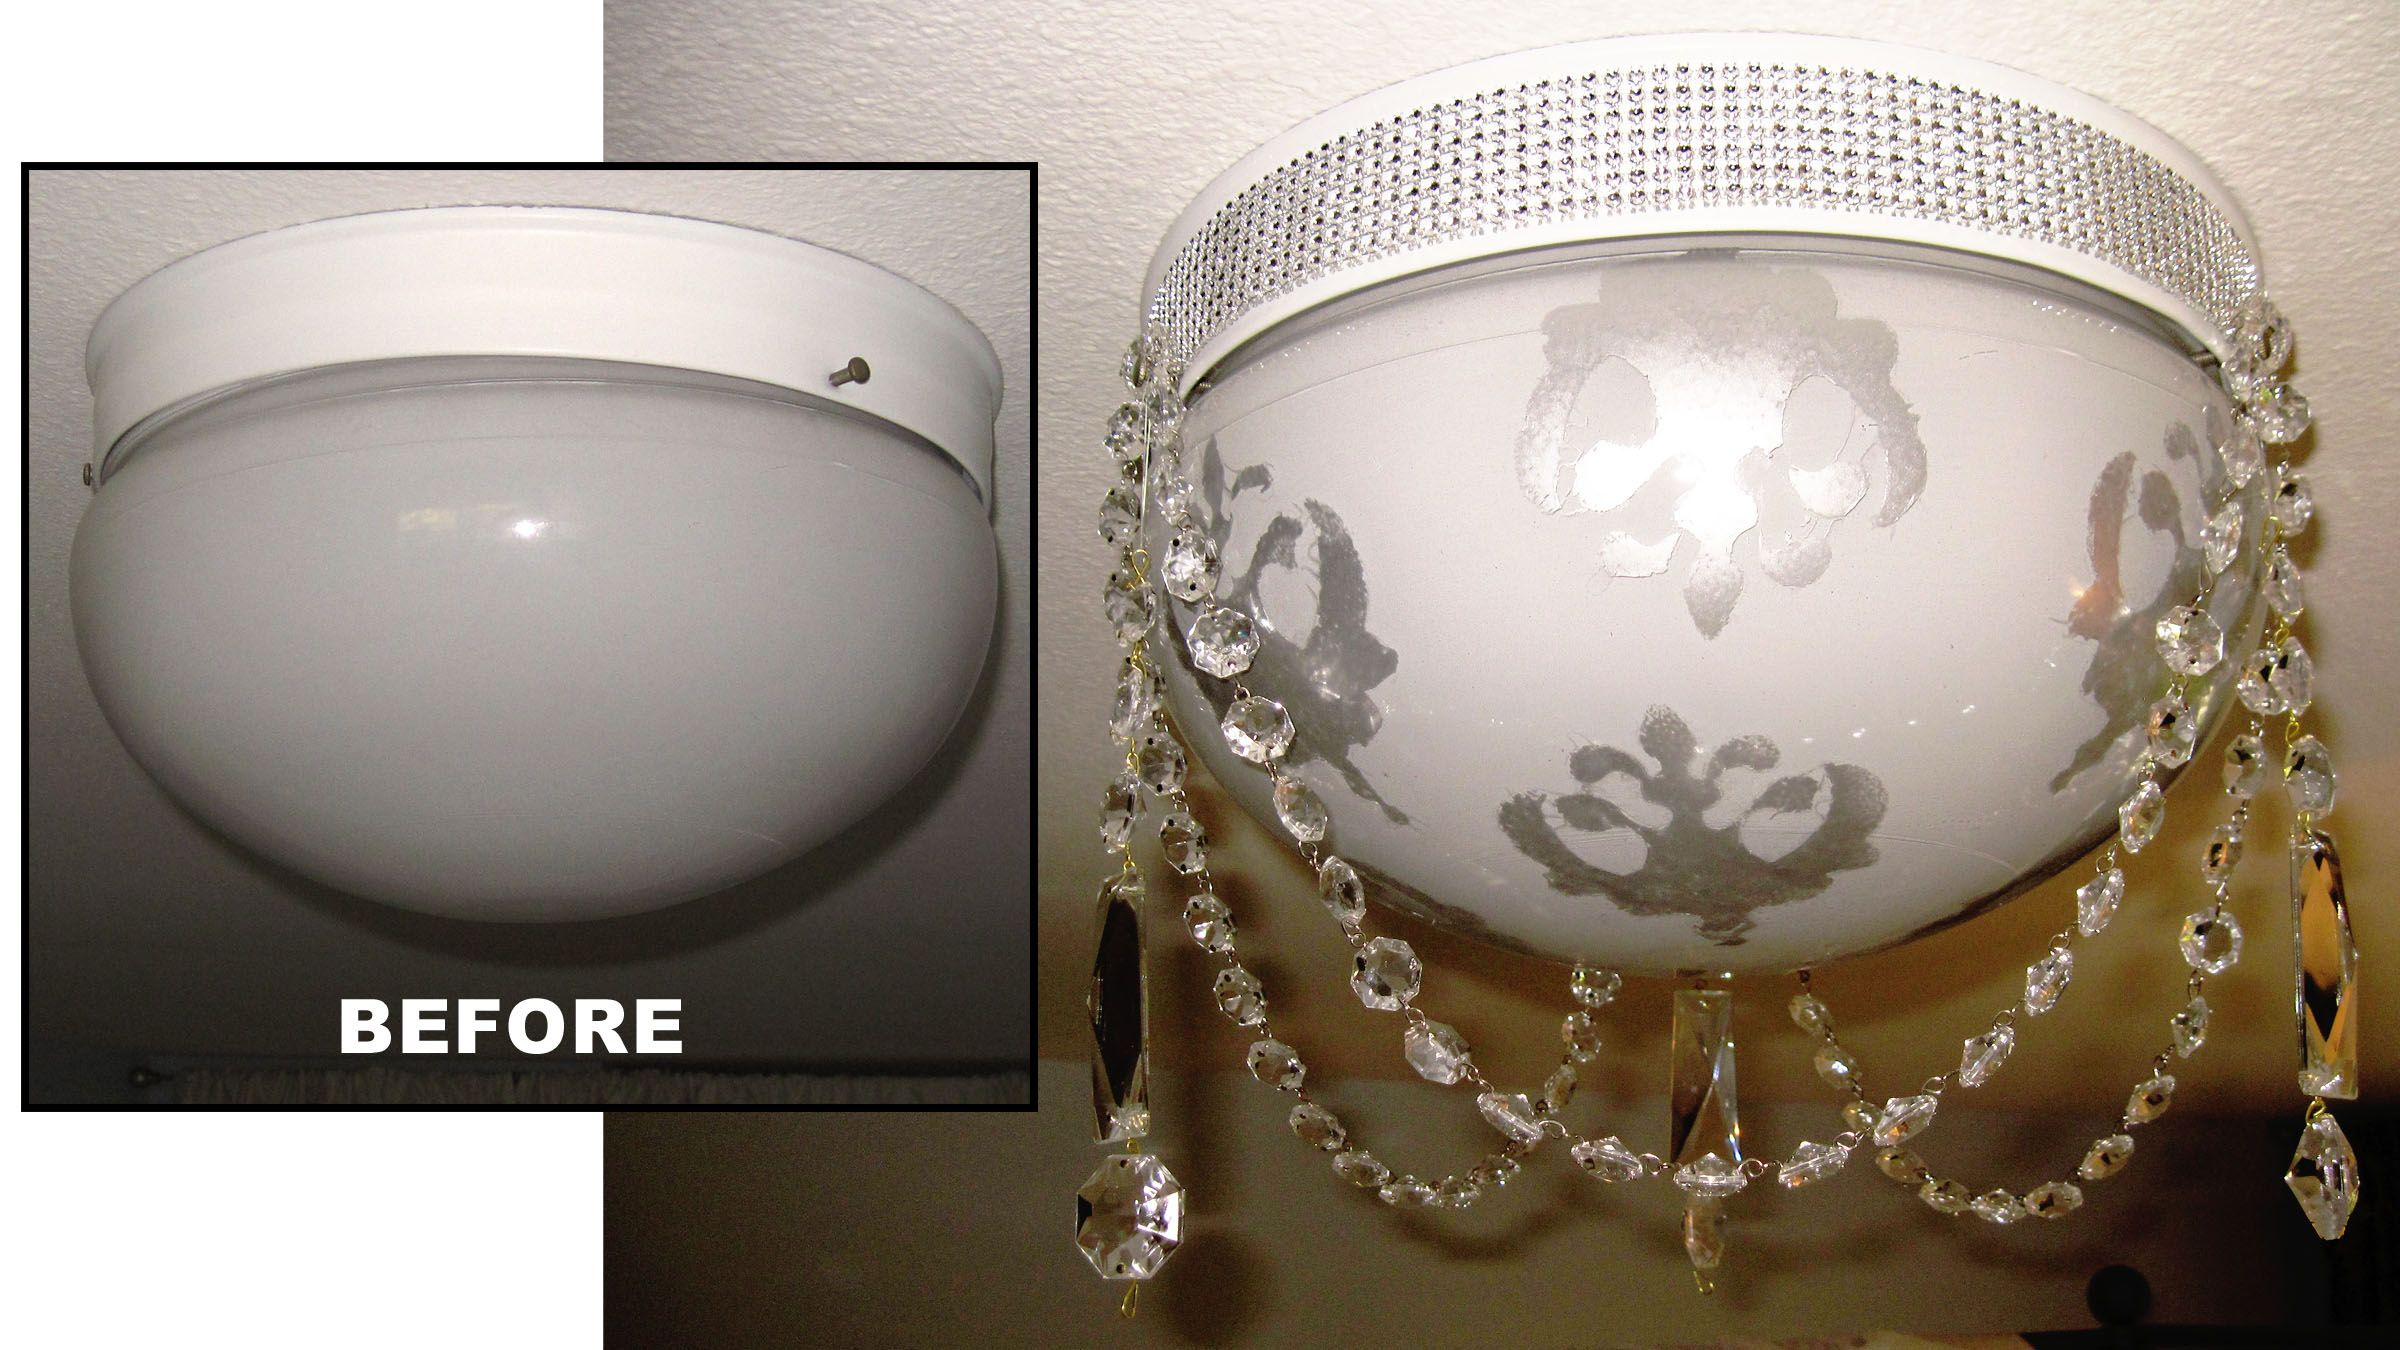 Ceiling light makeover beaded trim for votives round top and beads ceiling light fixtures ceiling lights diy lamps lamp shades cabbage ideas lighting ideas bedroom colours beaded trim globe arubaitofo Choice Image